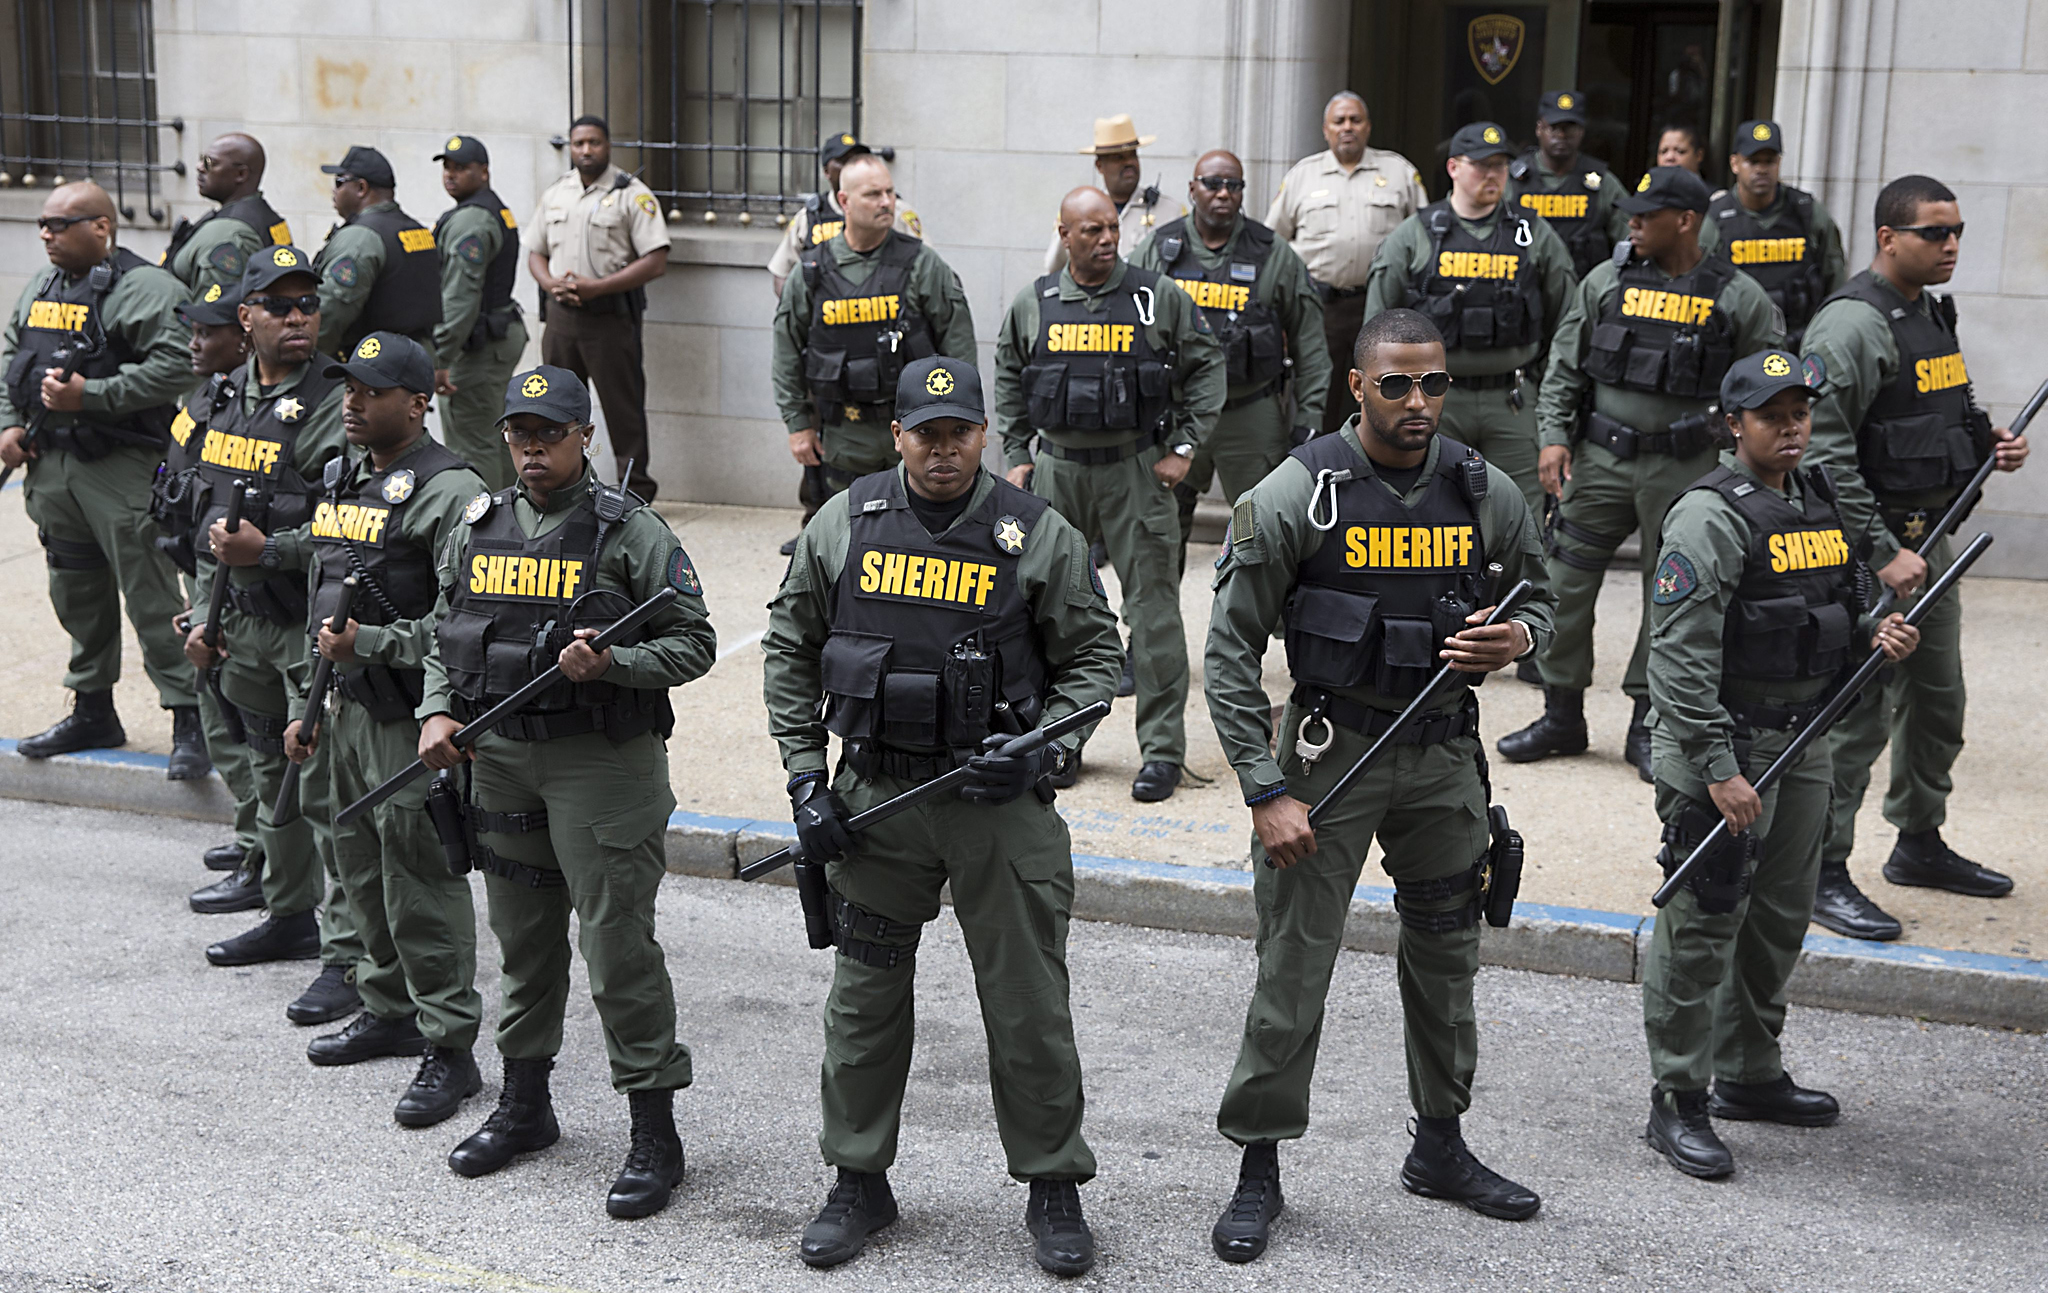 epa05386225 Police officers stand guard outside the courthouse before a verdict was issued in the trial of police officer Caesar Goodson, one of six Baltimore police officers charged over the death of Freddie Gray, in Baltimore, Maryland, USA, 23 June 2016. A judge issued a verdict of not-guilty in all accounts in the trial of Goodson.  EPA/MICHAEL REYNOLDS